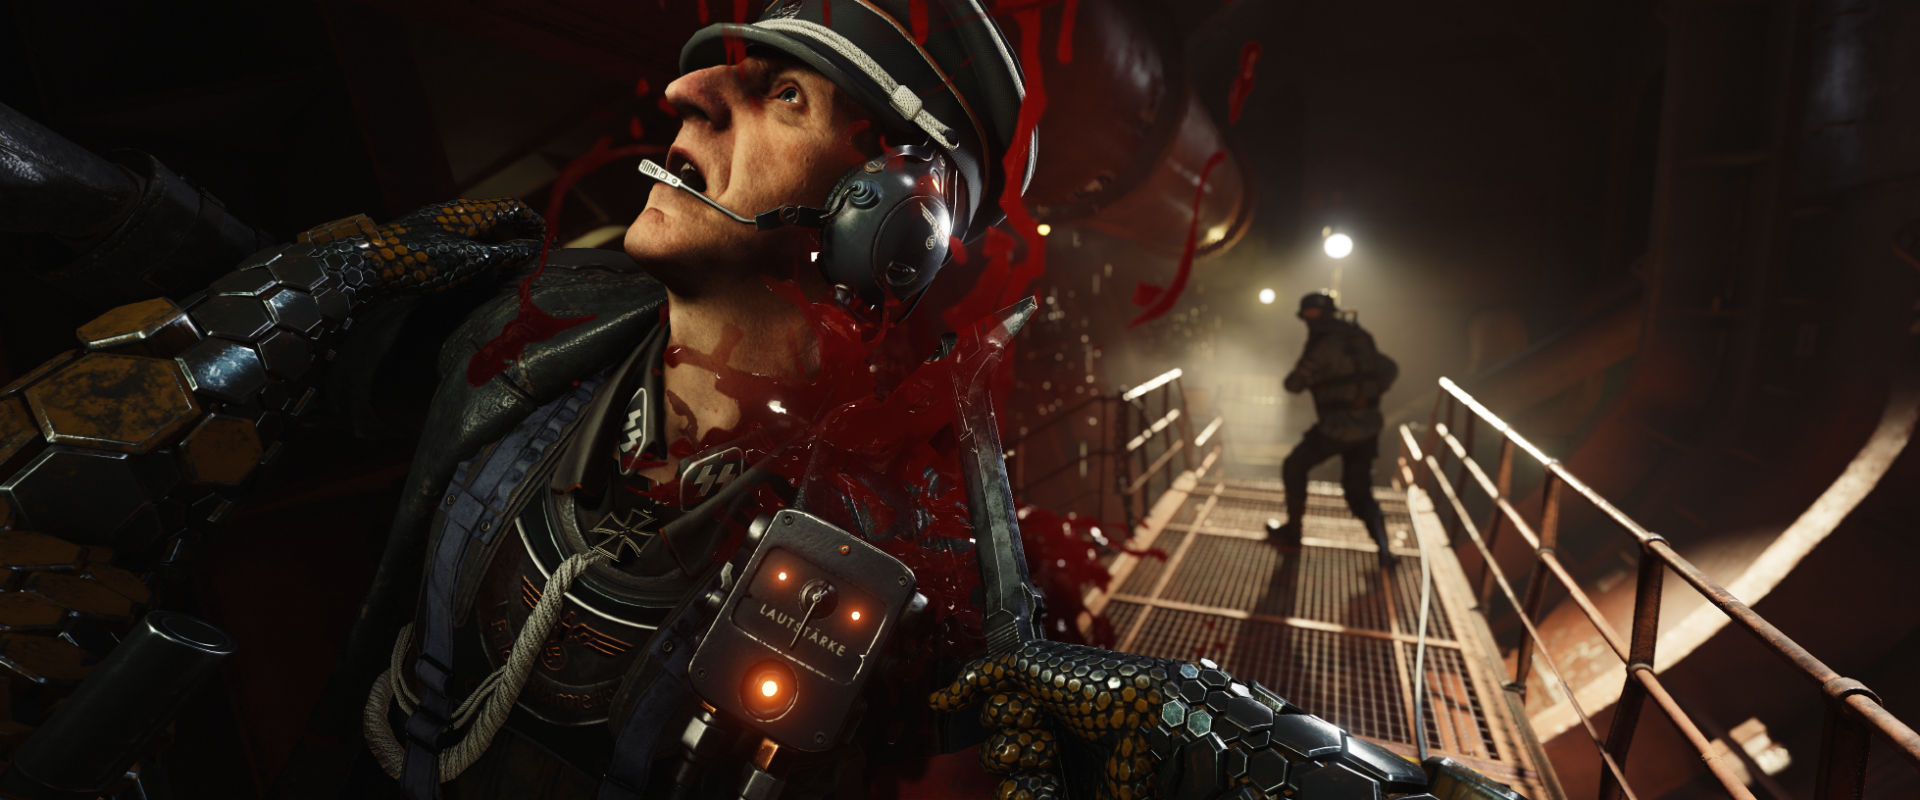 Wolfenstein 2: The New Colossus Weapons Guide